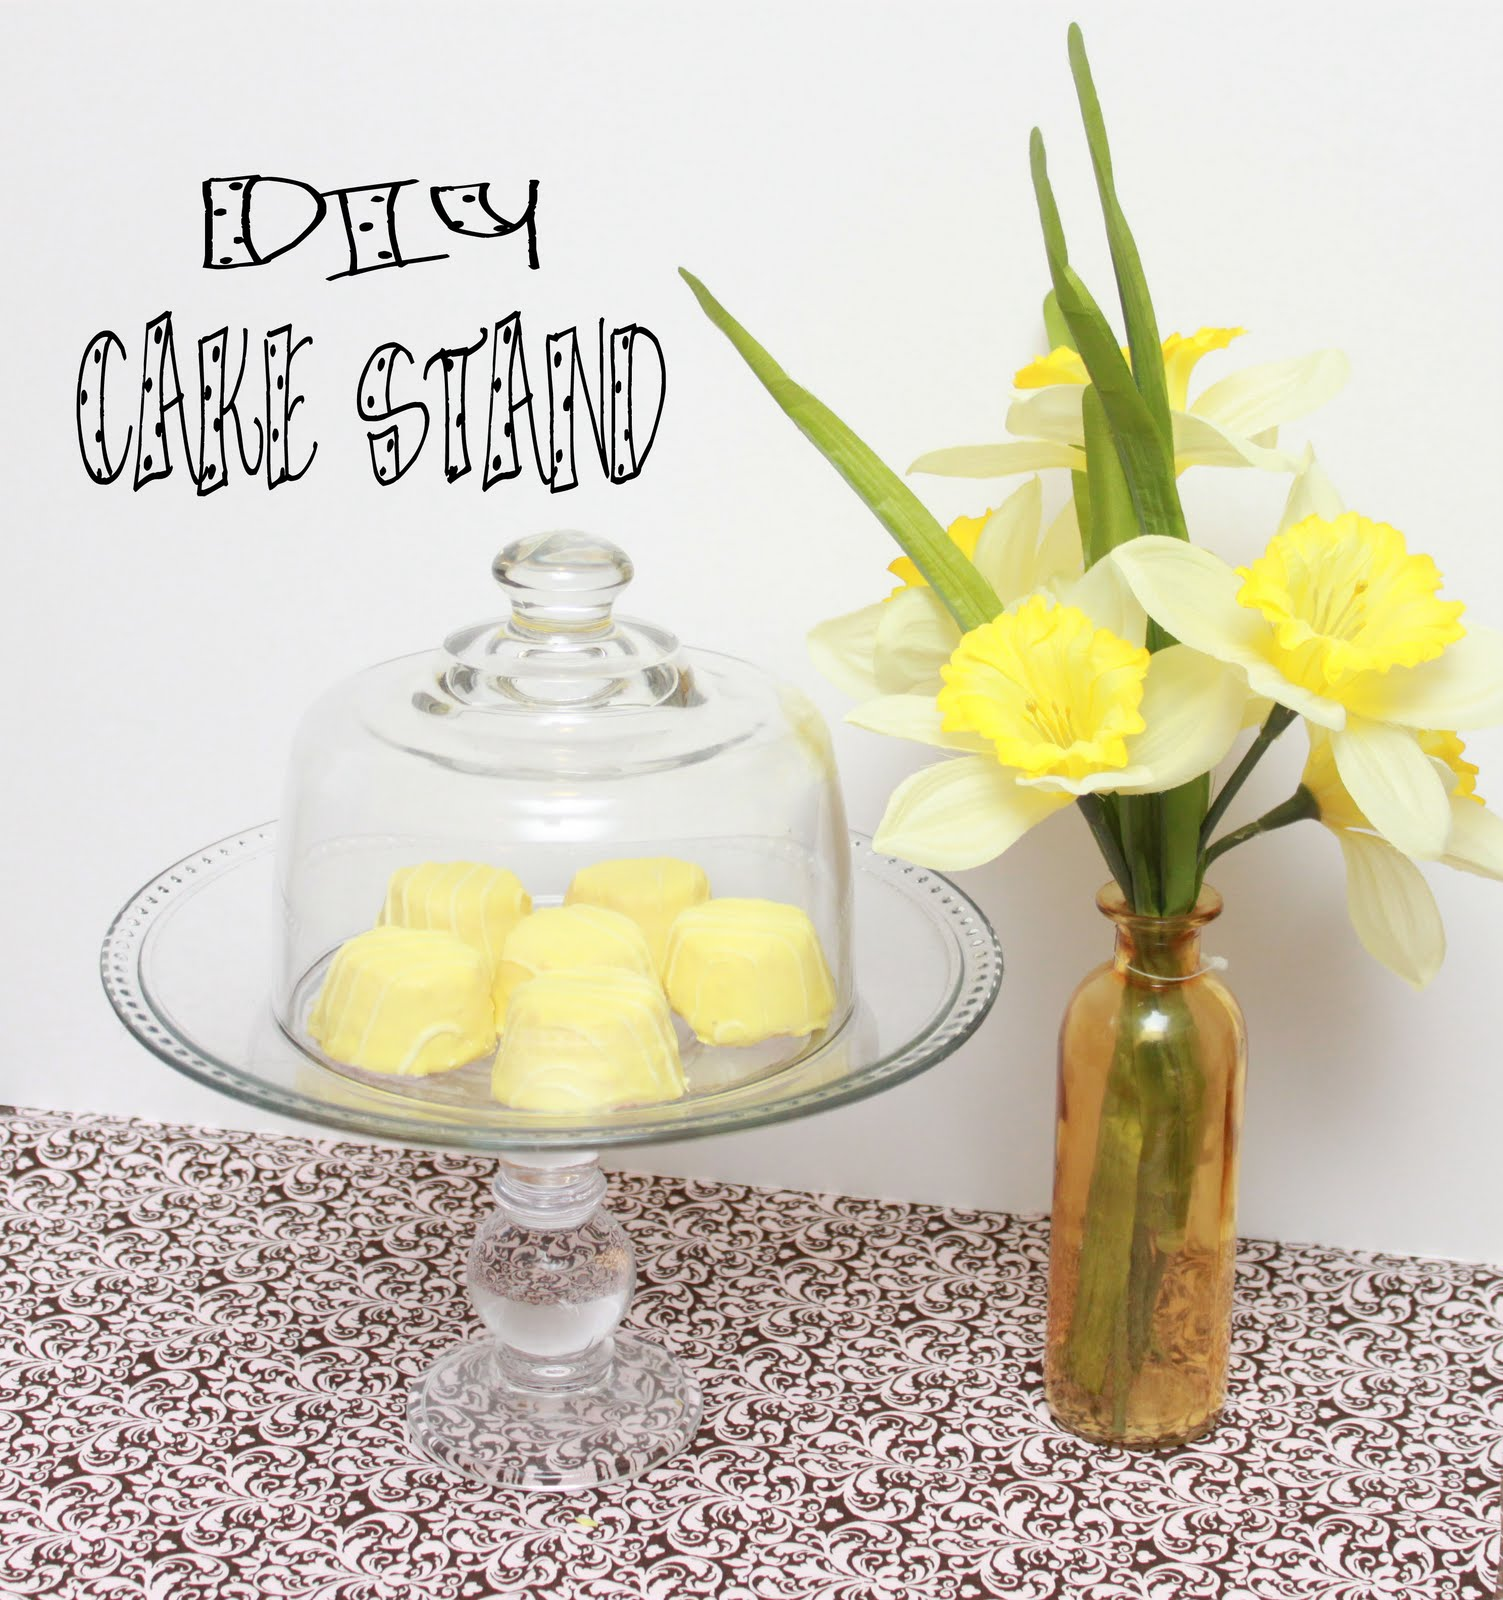 polka dotted elephants diy cake stand. Black Bedroom Furniture Sets. Home Design Ideas